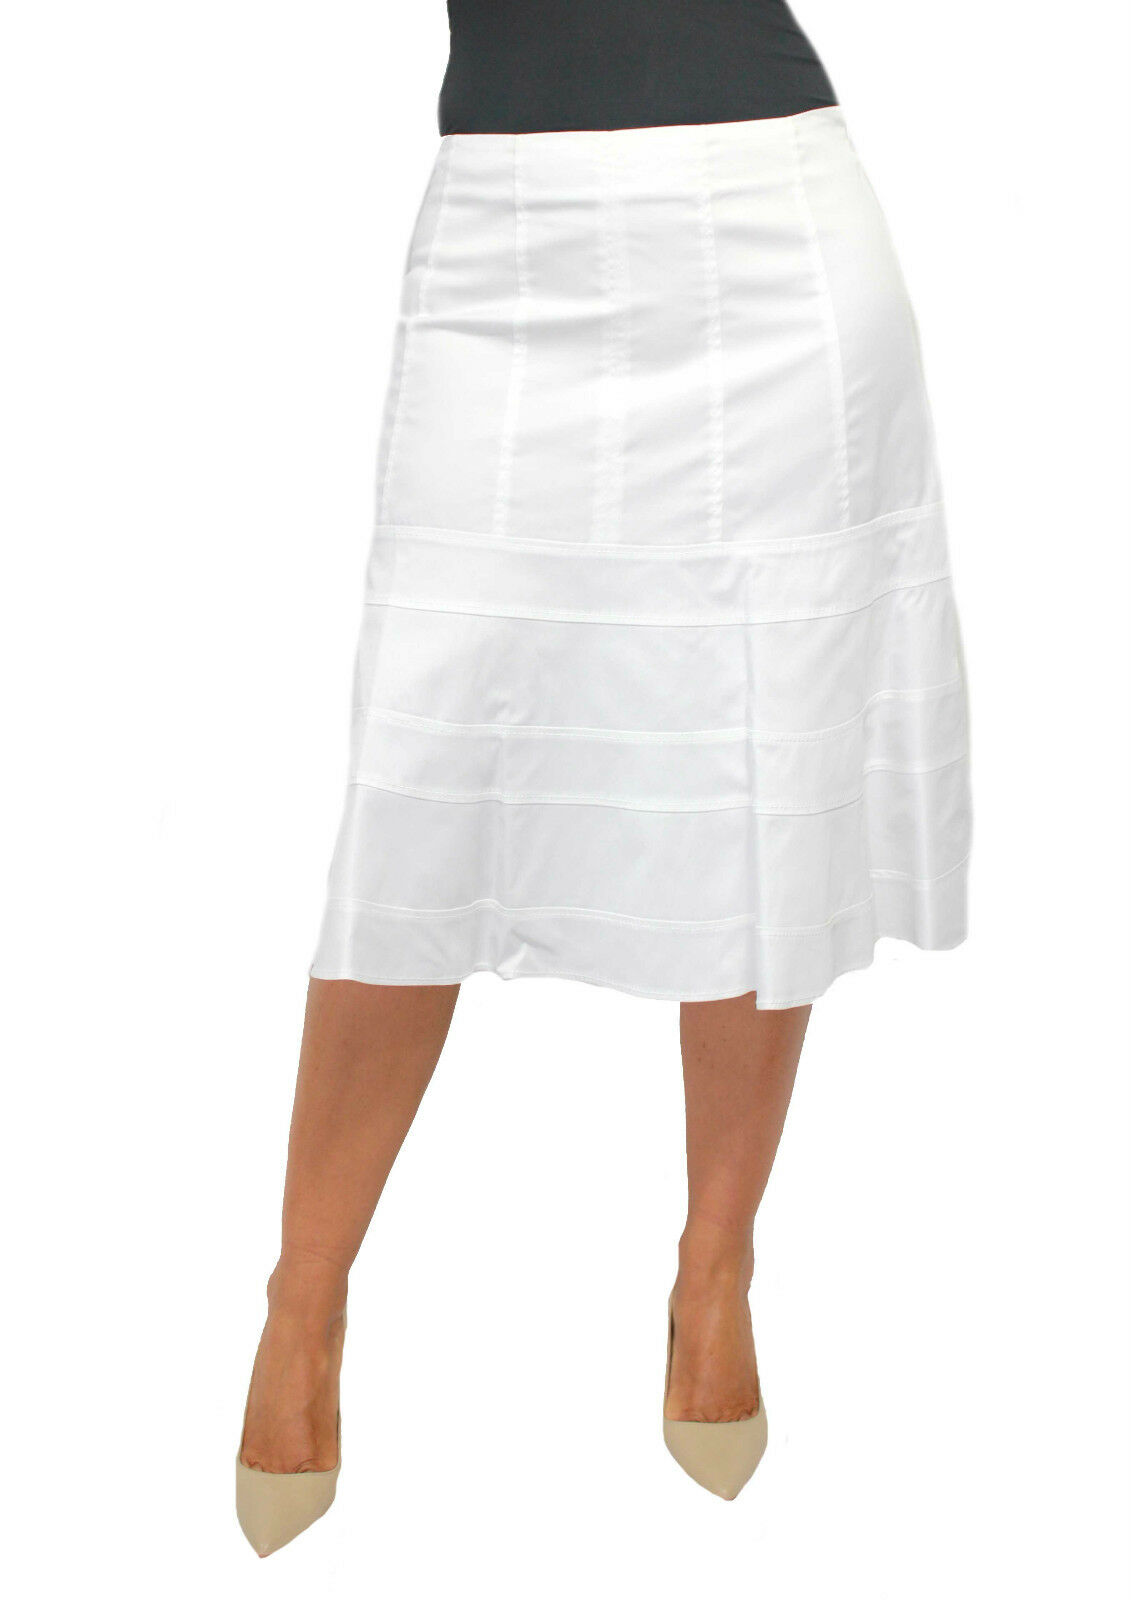 Max Mara Skirt White 97%Cotton 3%Elastane